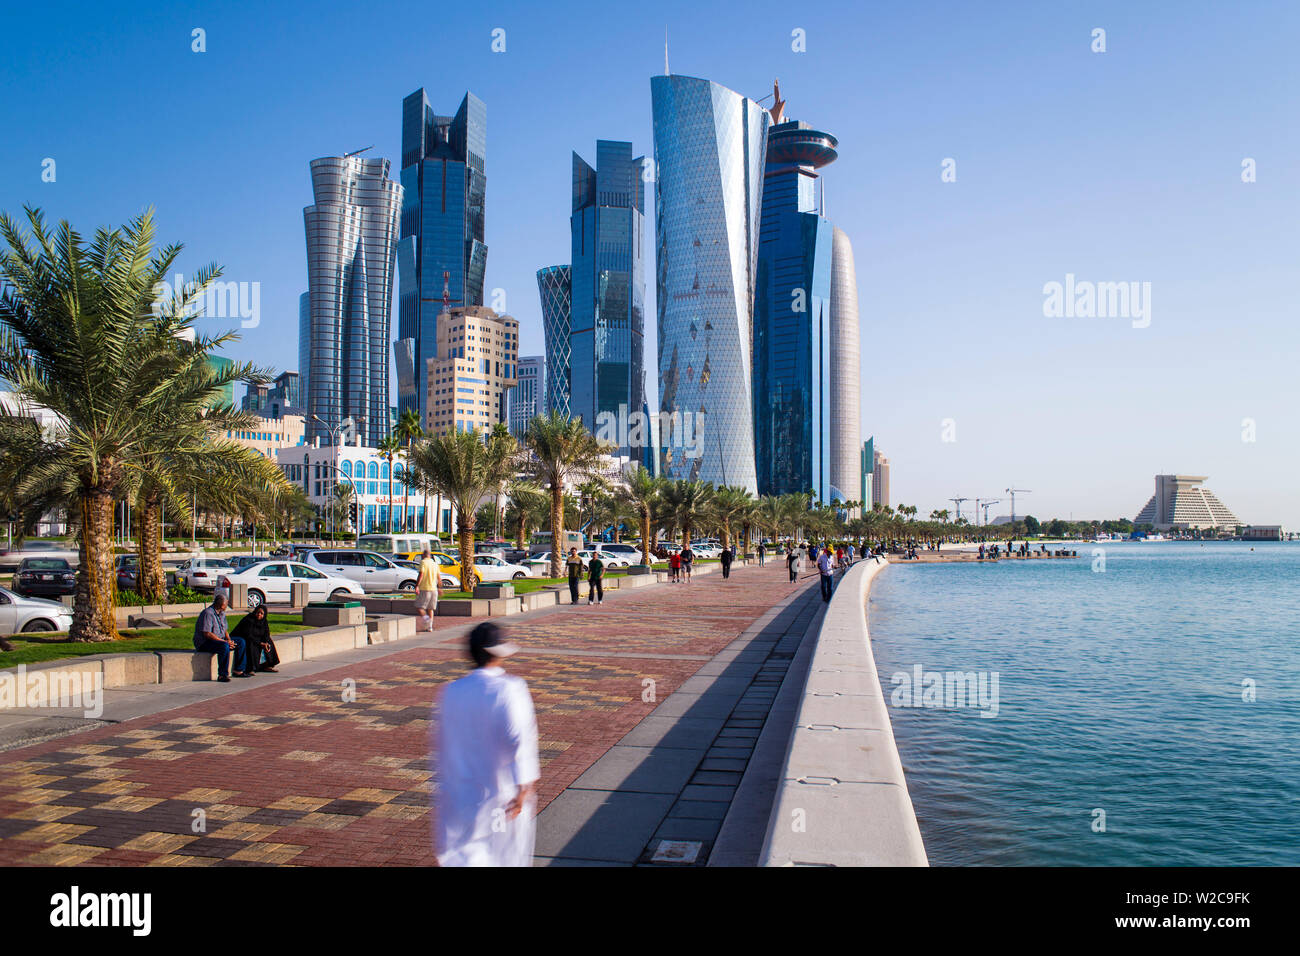 Qatar, Doha, new skyline of the West Bay central financial district of Doha Stock Photo